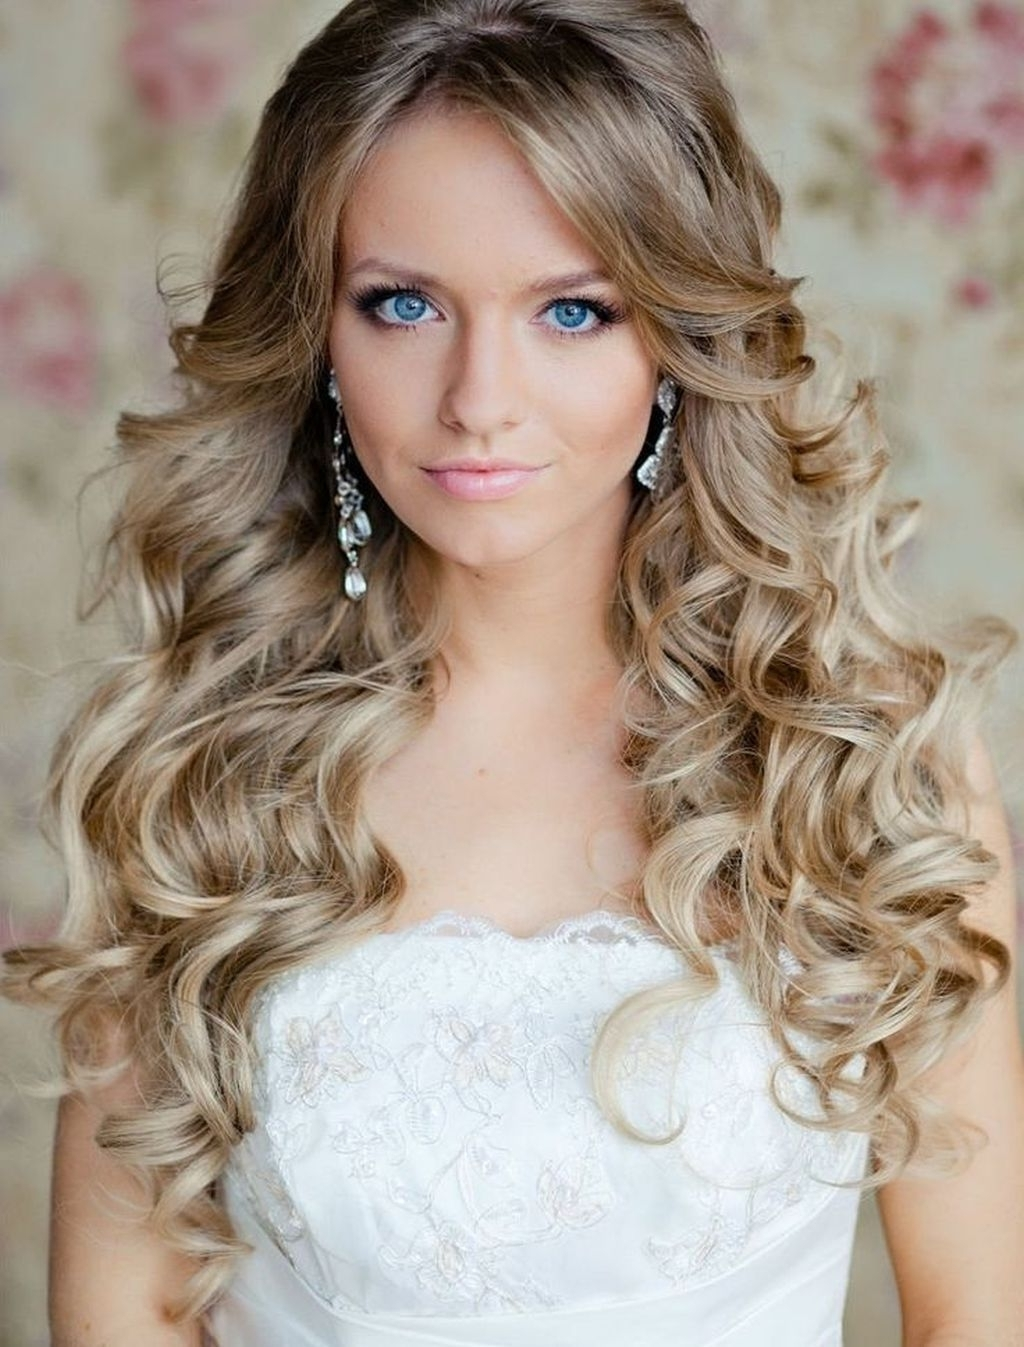 2018 Wedding Hairstyles For Long Blonde Hair For Wedding Hairstyles For Long Blonde Hairstyle Wedding Hairstyles For (View 4 of 15)